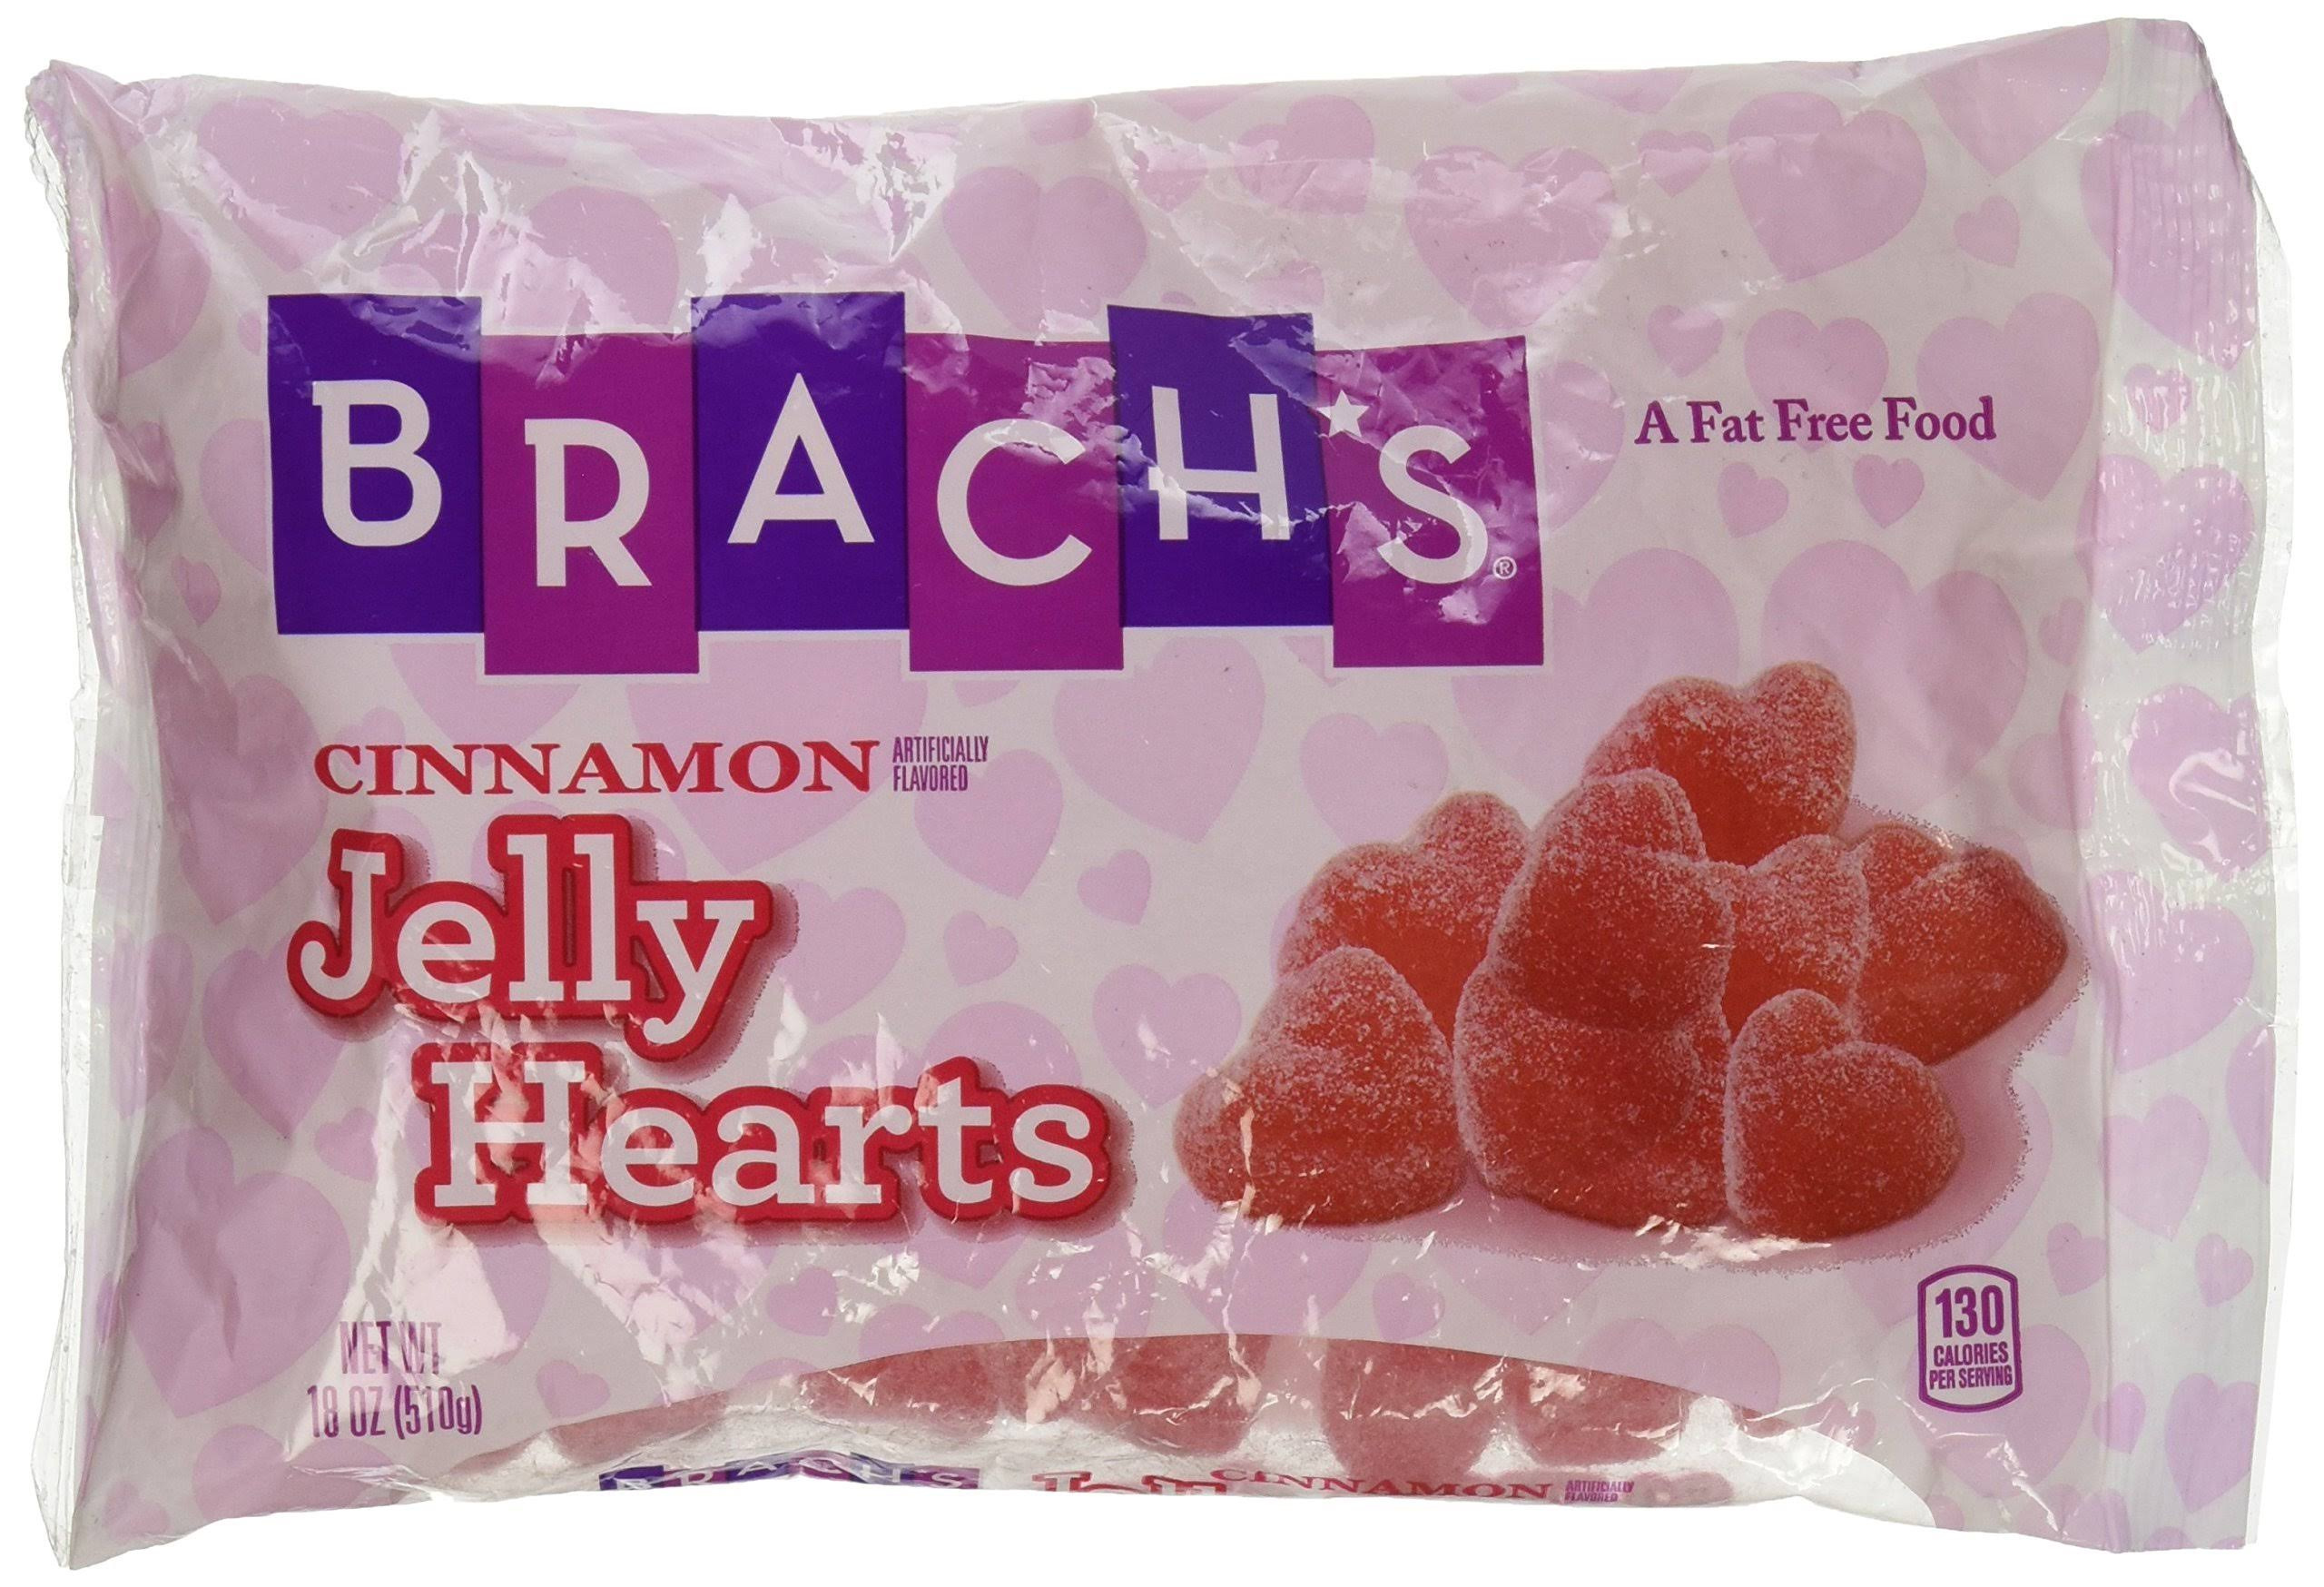 Brach's Cinnamon Jelly Hearts Chewy Candy - 12oz